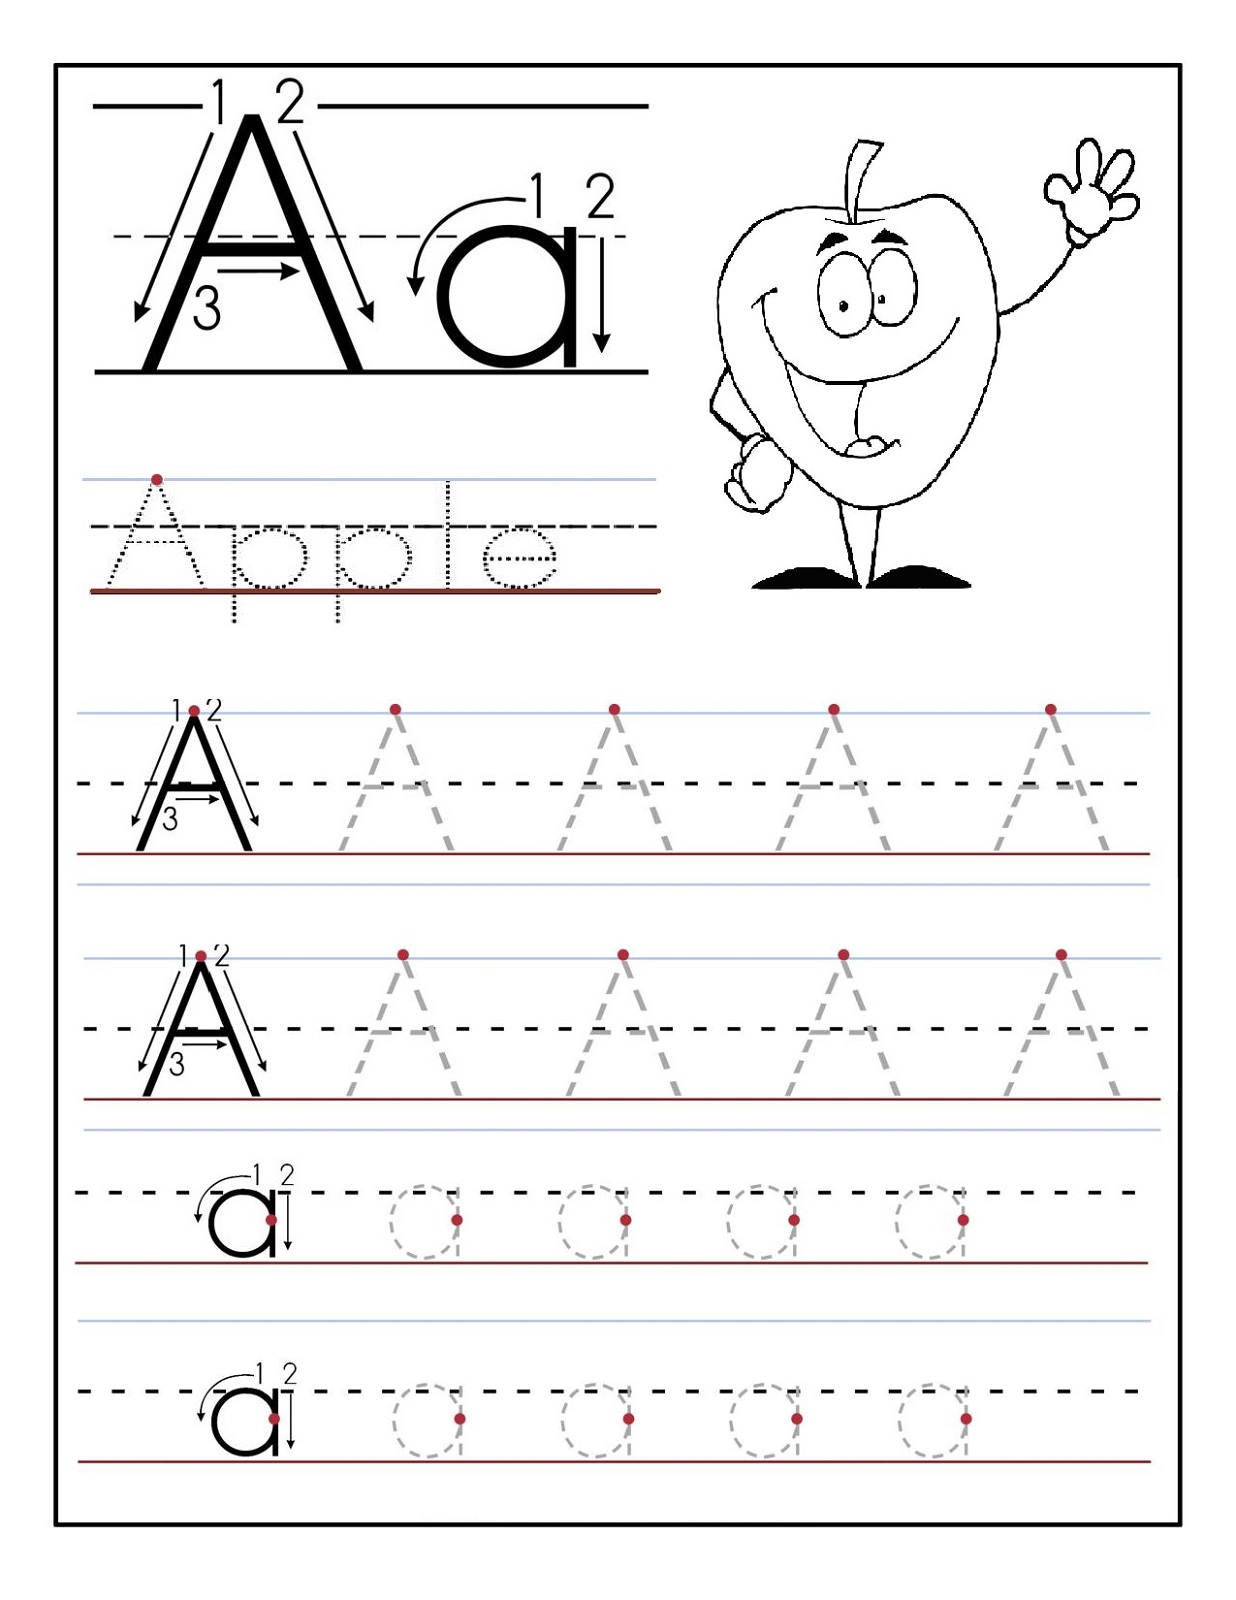 Worksheet Free Preschool free preschool printable activity shelter printables tracing